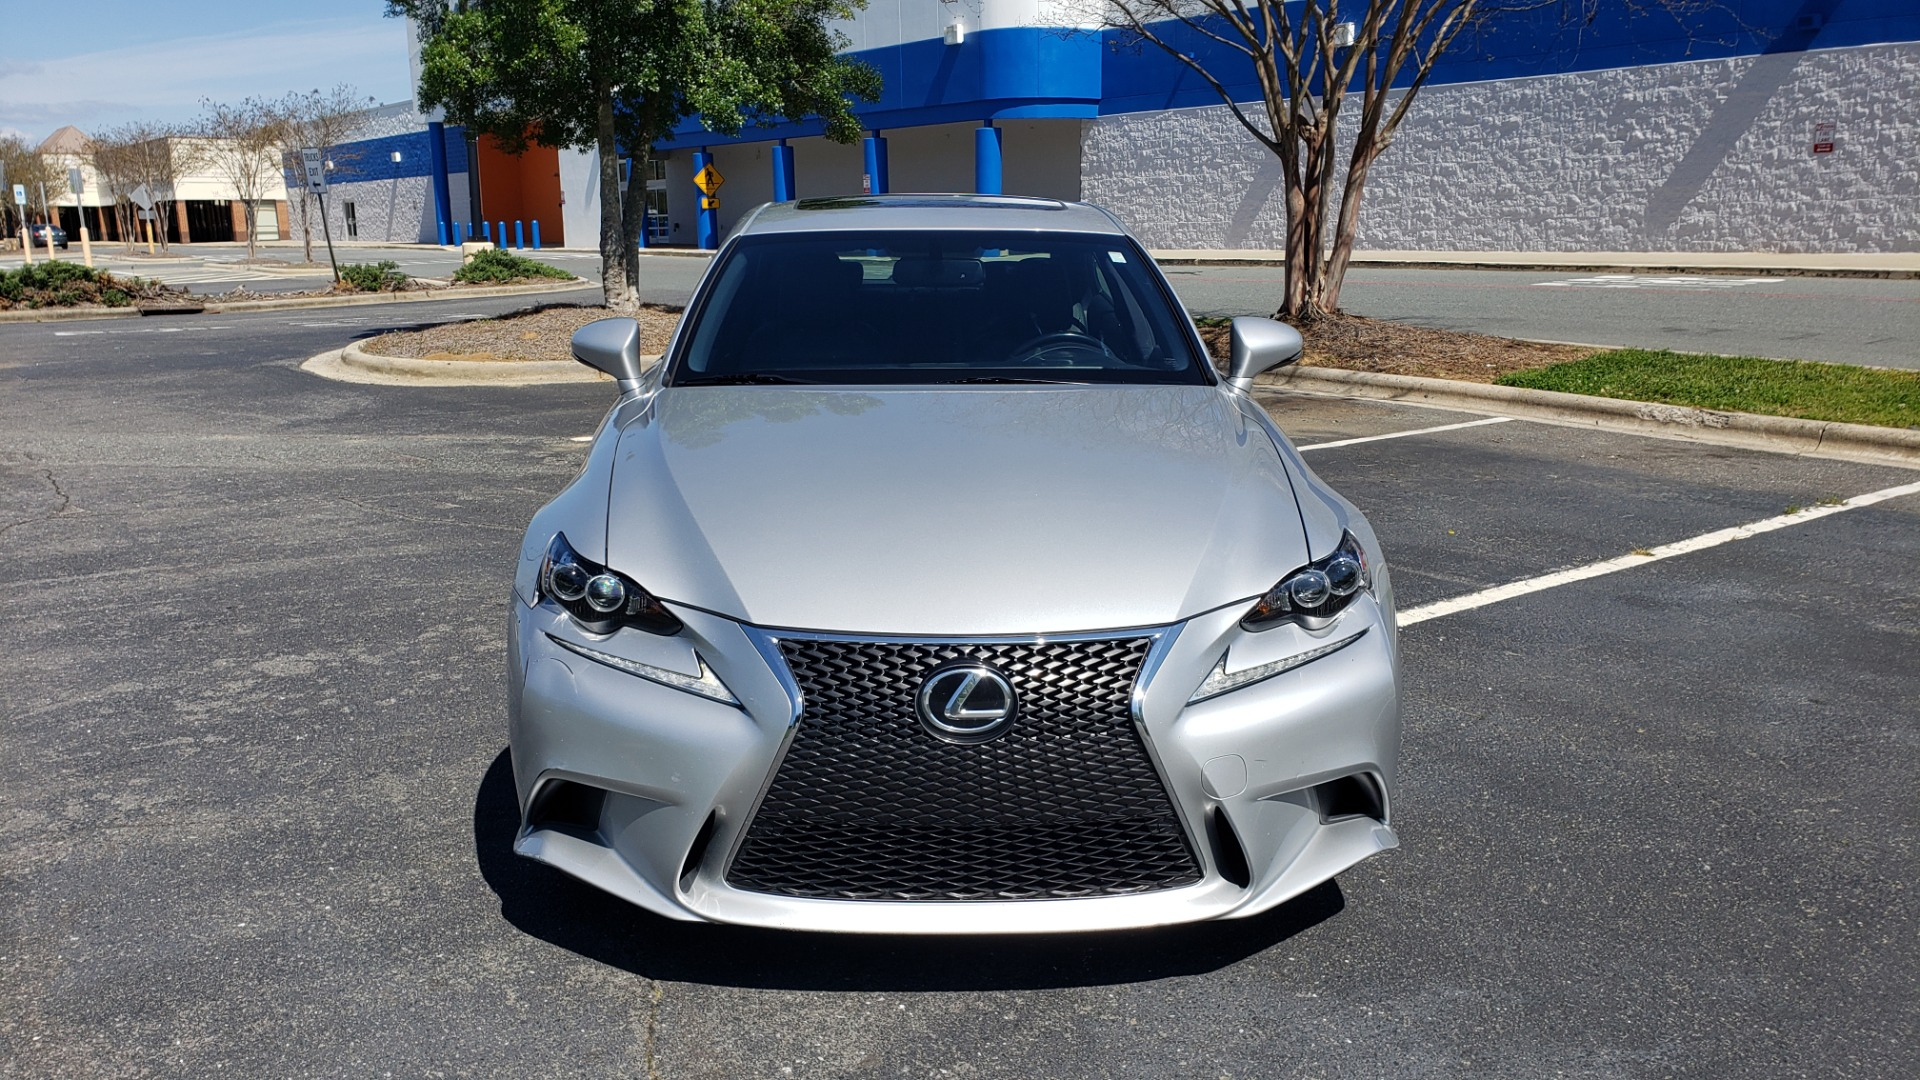 Used 2015 Lexus IS 250 F-SPORT / BSM / SUNROOF / VENT SEATS / REARVIEW for sale Sold at Formula Imports in Charlotte NC 28227 23